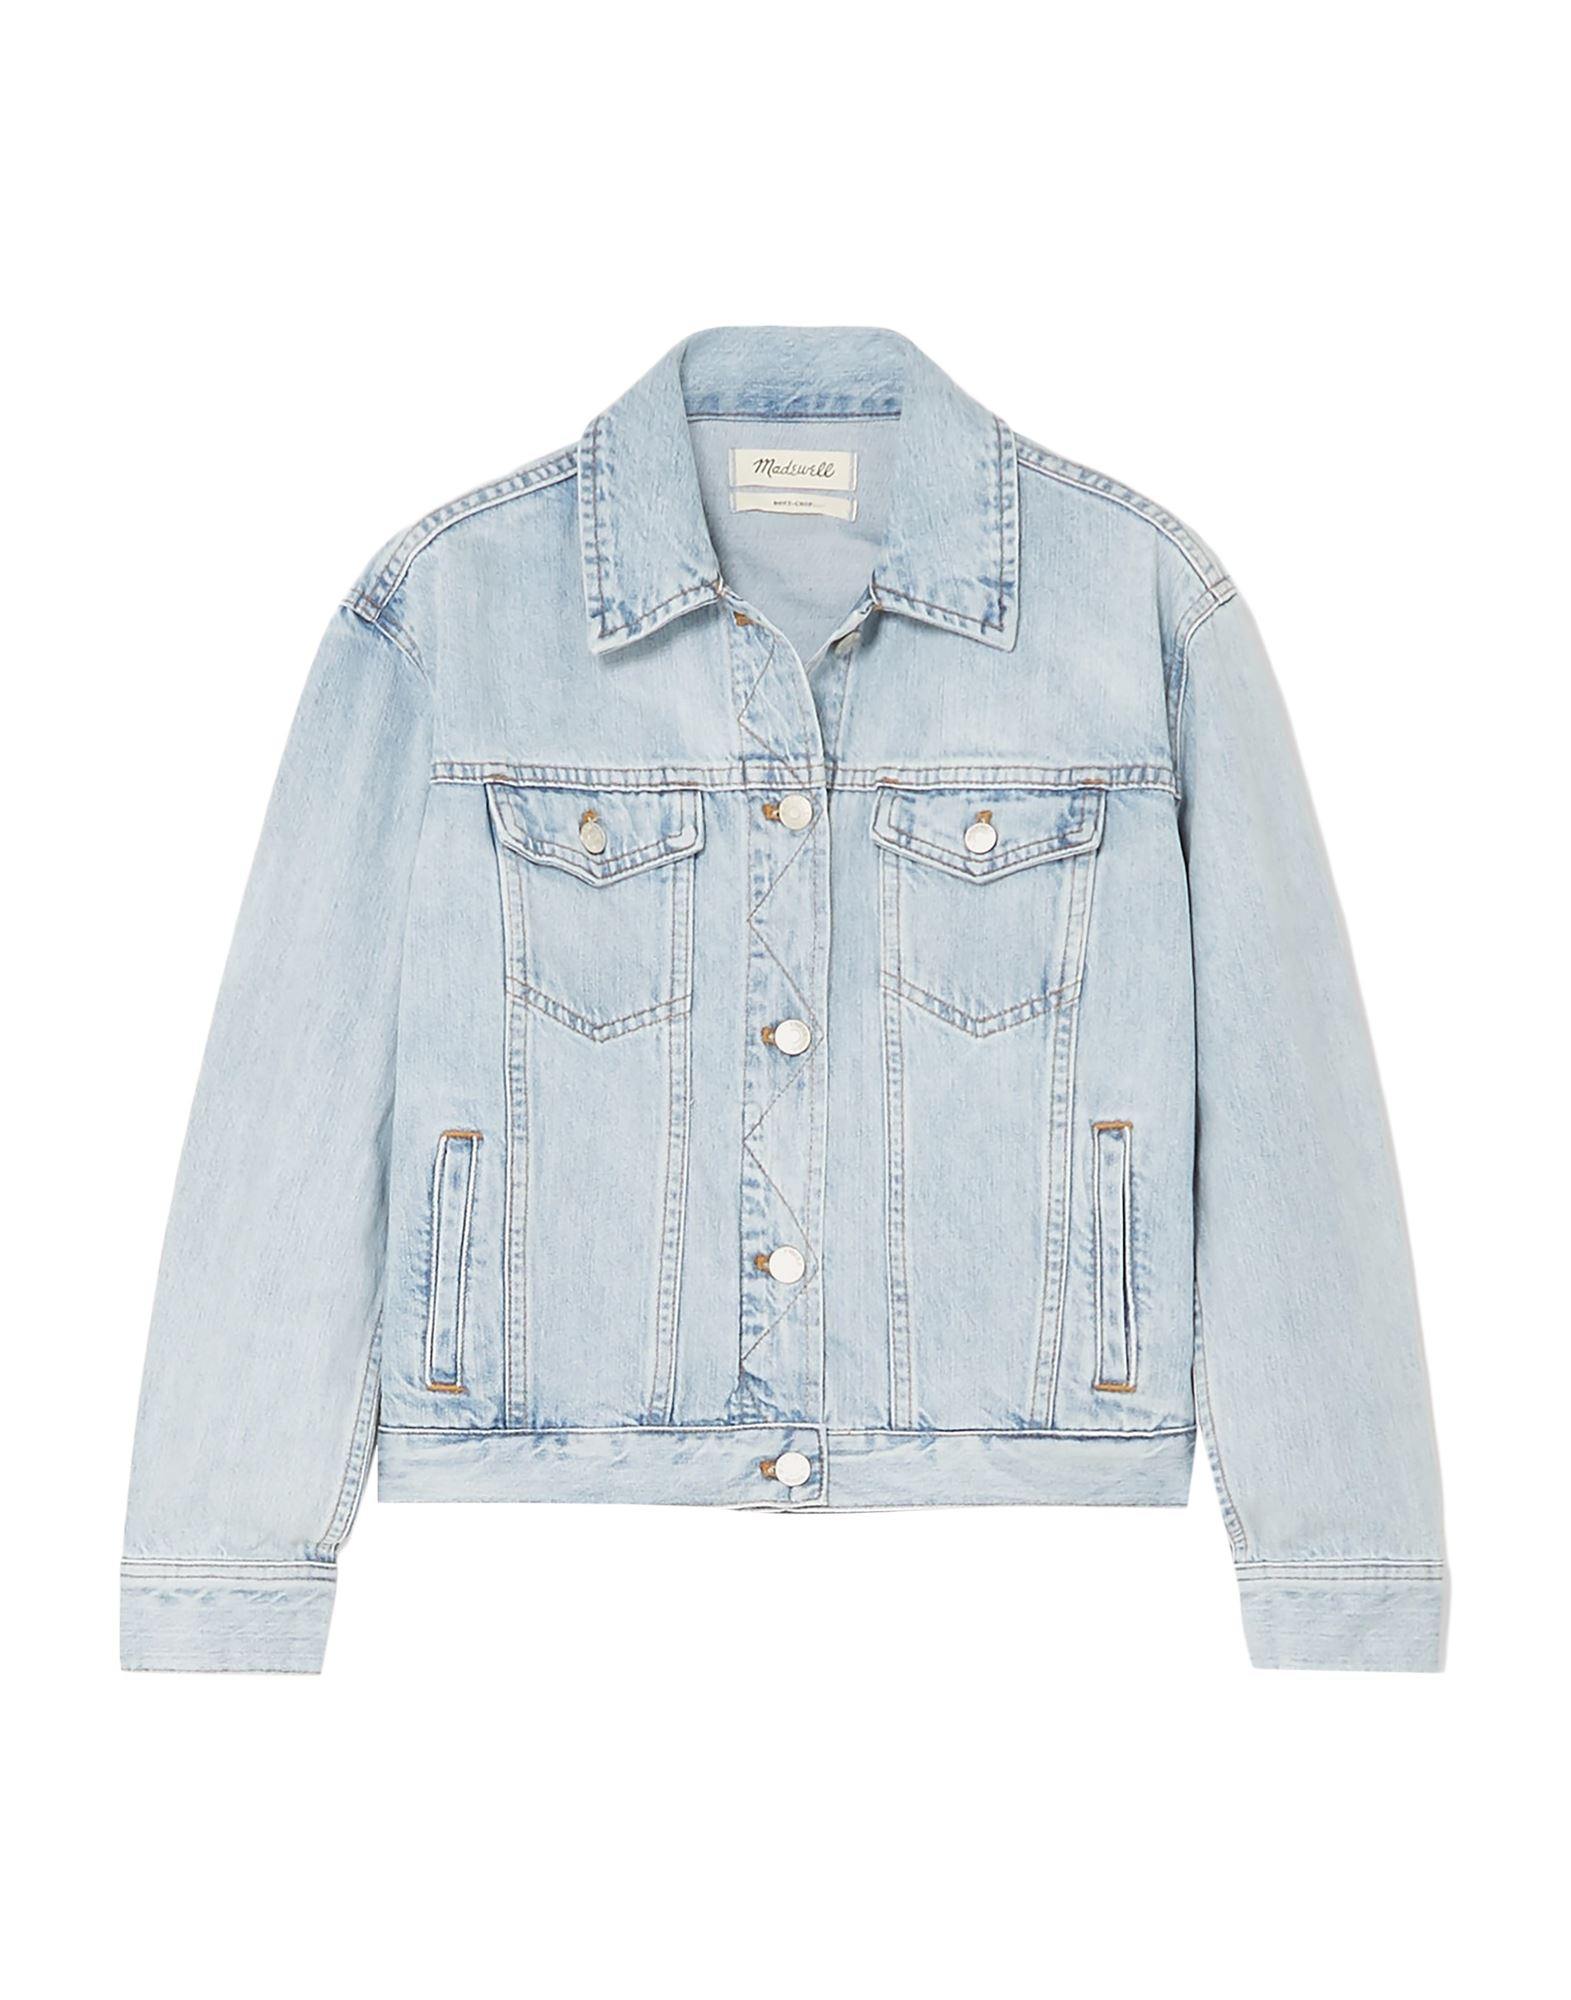 MADEWELL Denim outerwear. denim, no appliqués, solid color, medium wash, long sleeves, classic neckline, single-breasted, front closure, button closing, multipockets, unlined. 100% Cotton